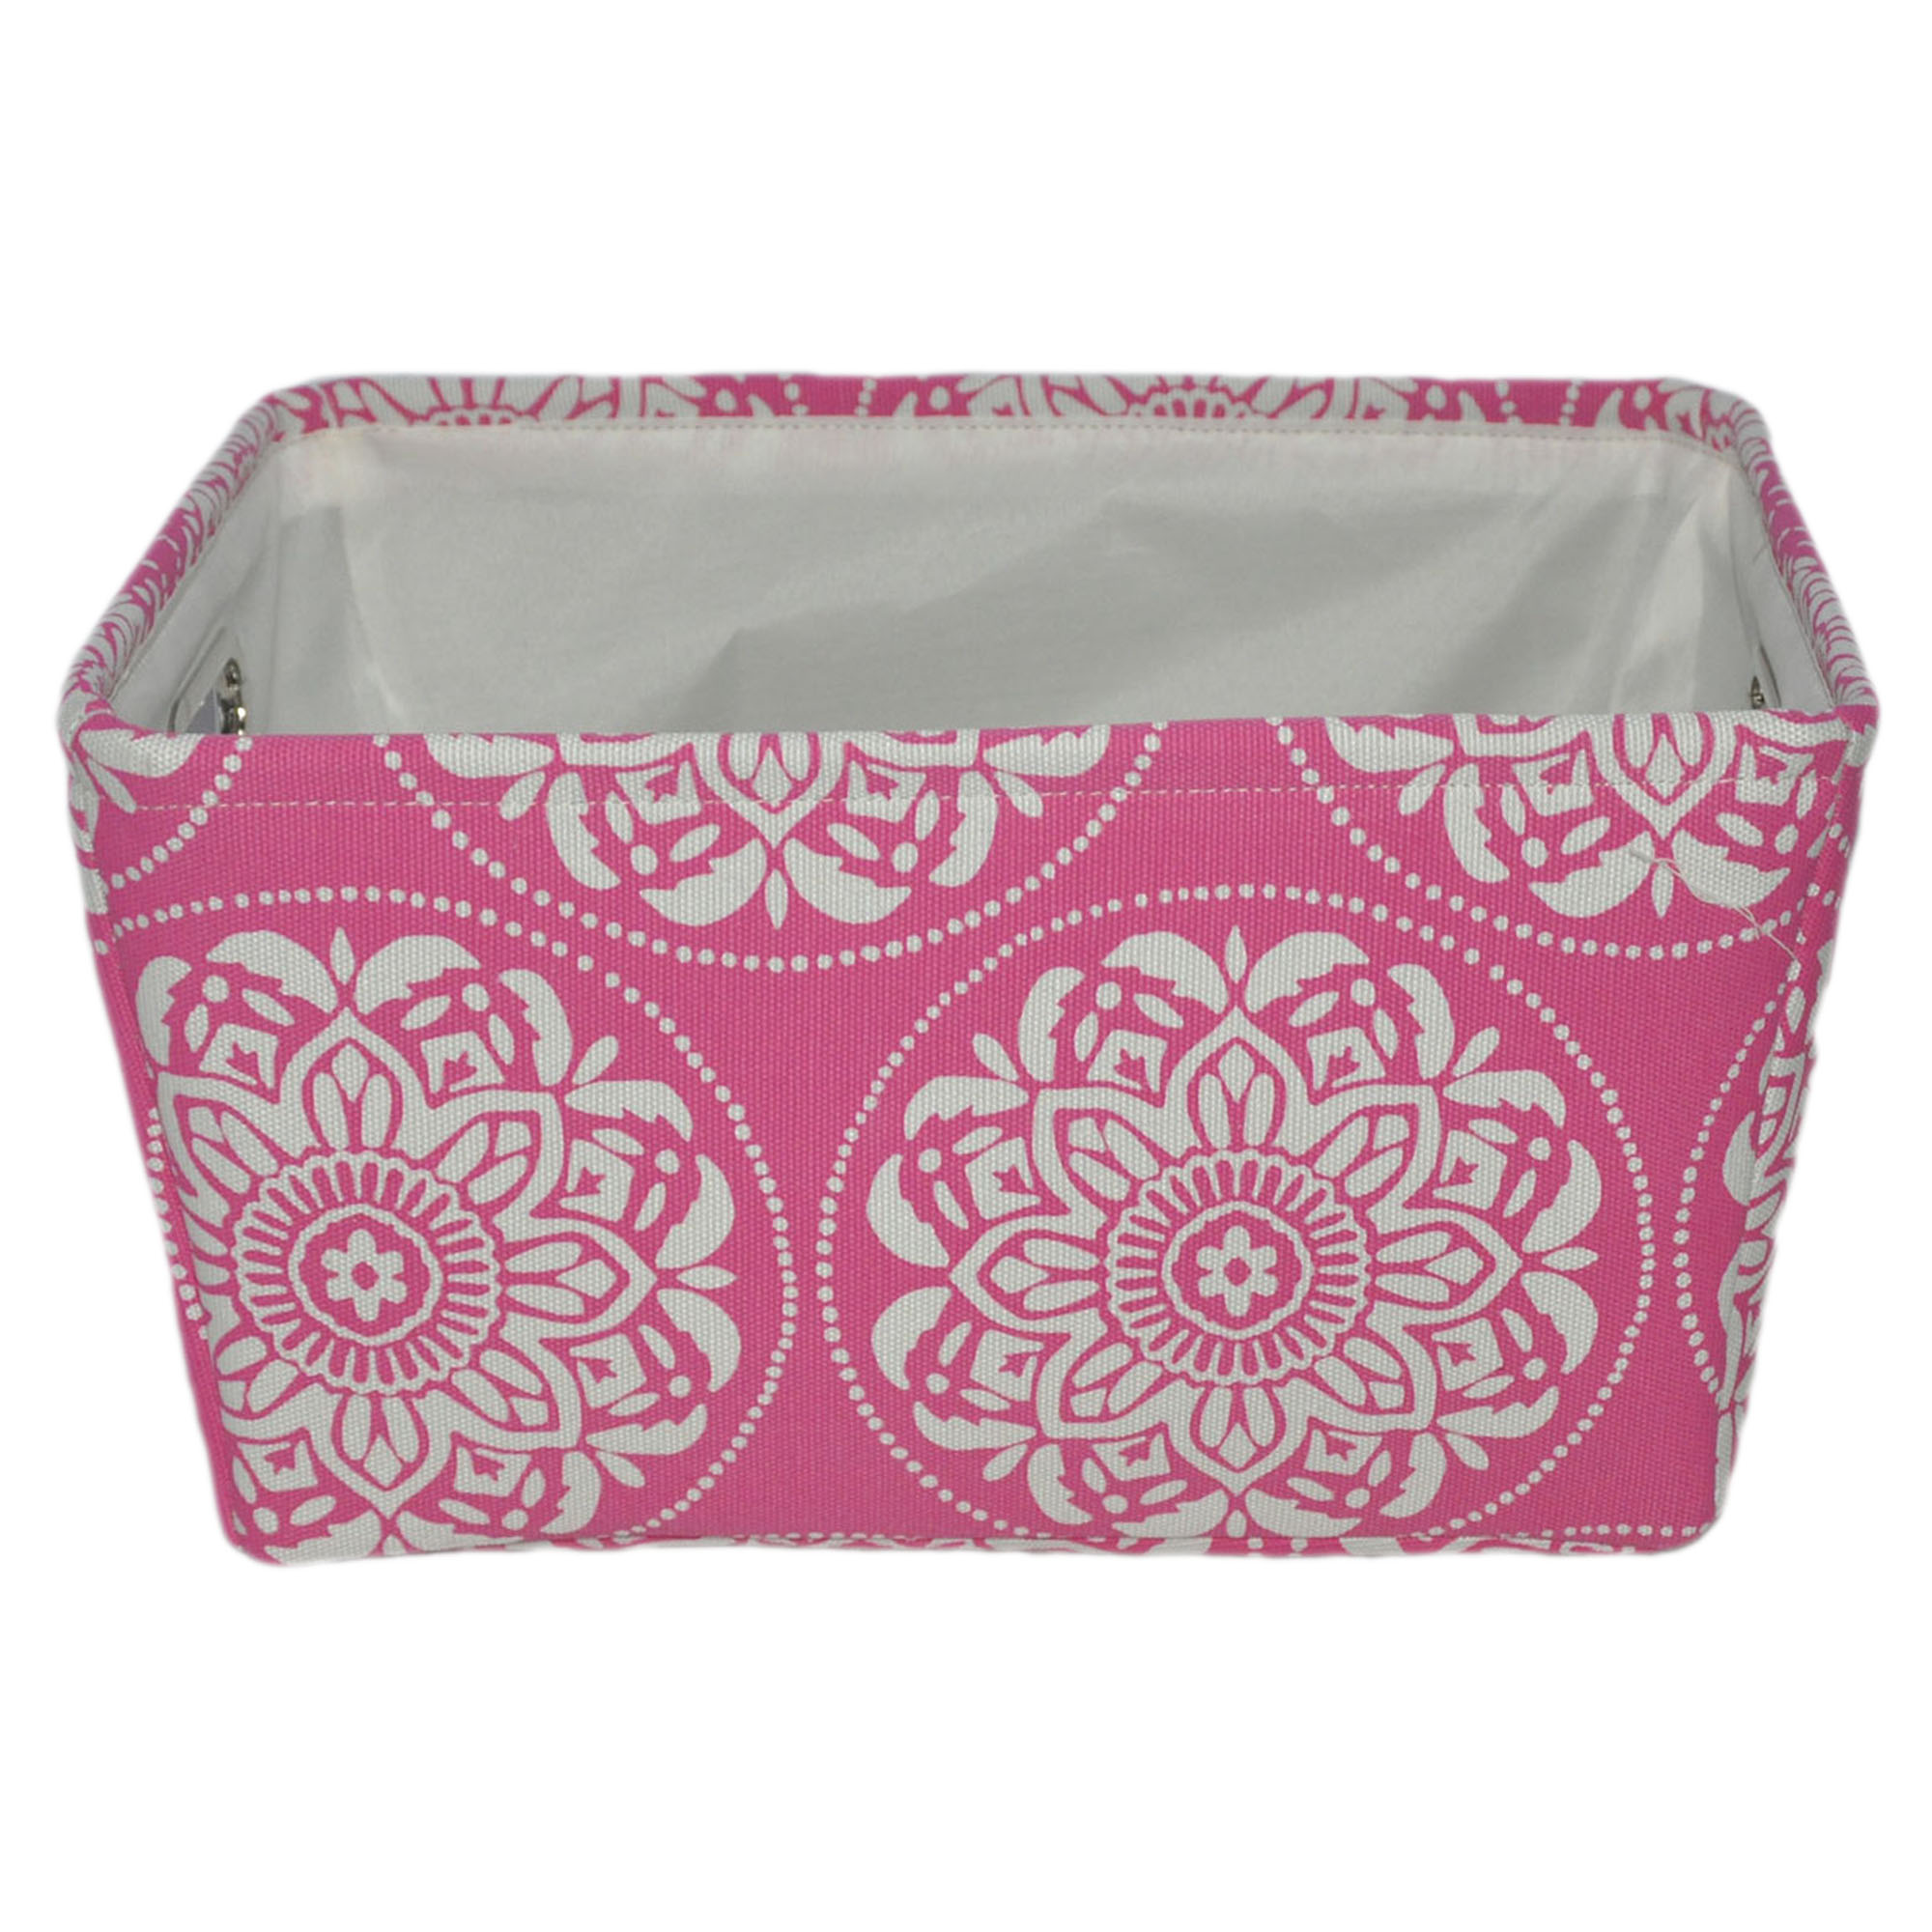 Mainstays Medallion Canvas Basket - 3 Pack - Multiple Colors